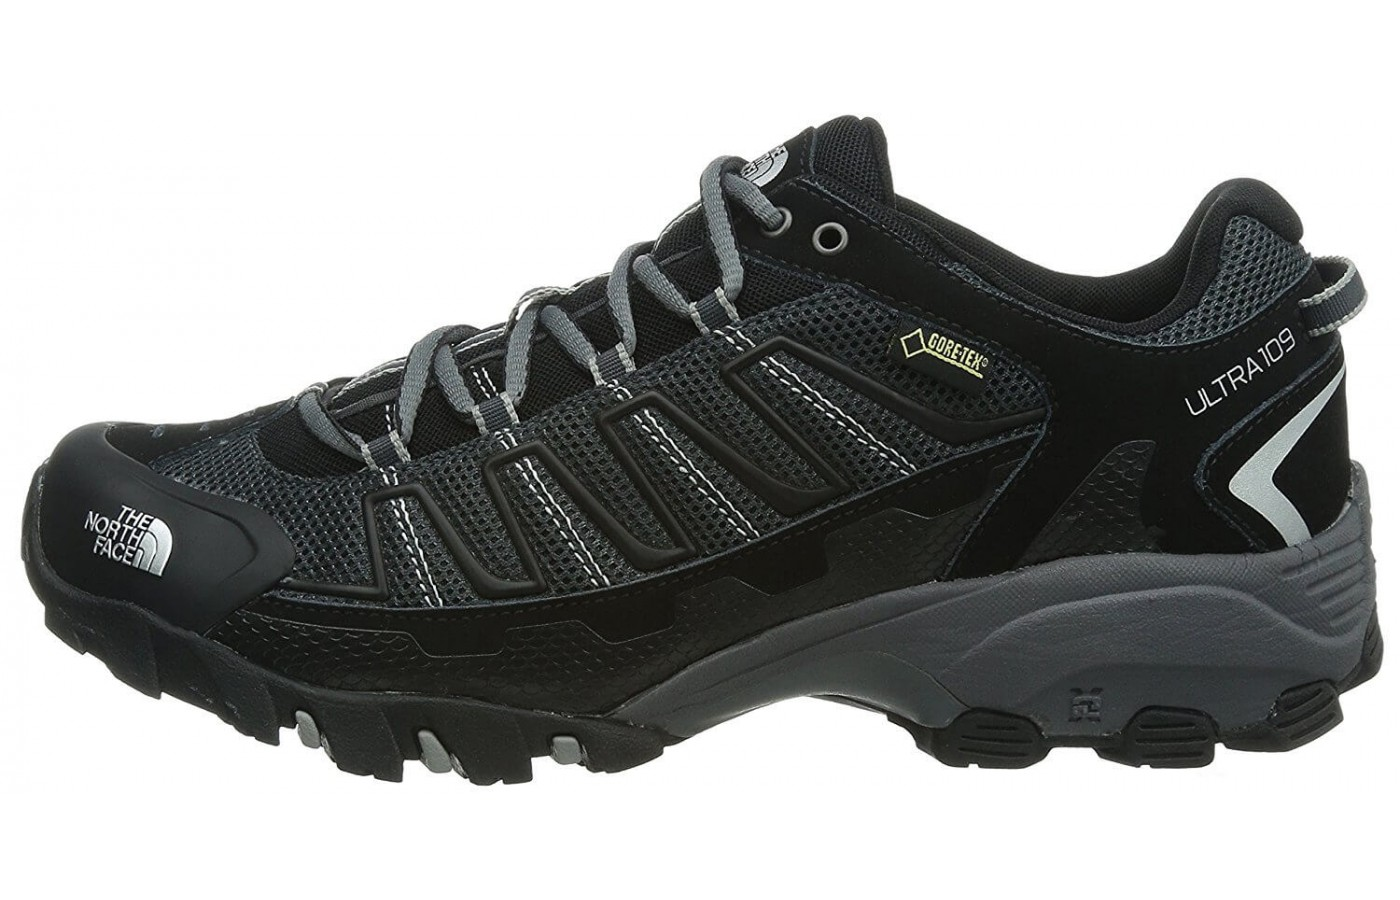 The The North Face Ultra 110 GTX has an ESS rock plate for protection